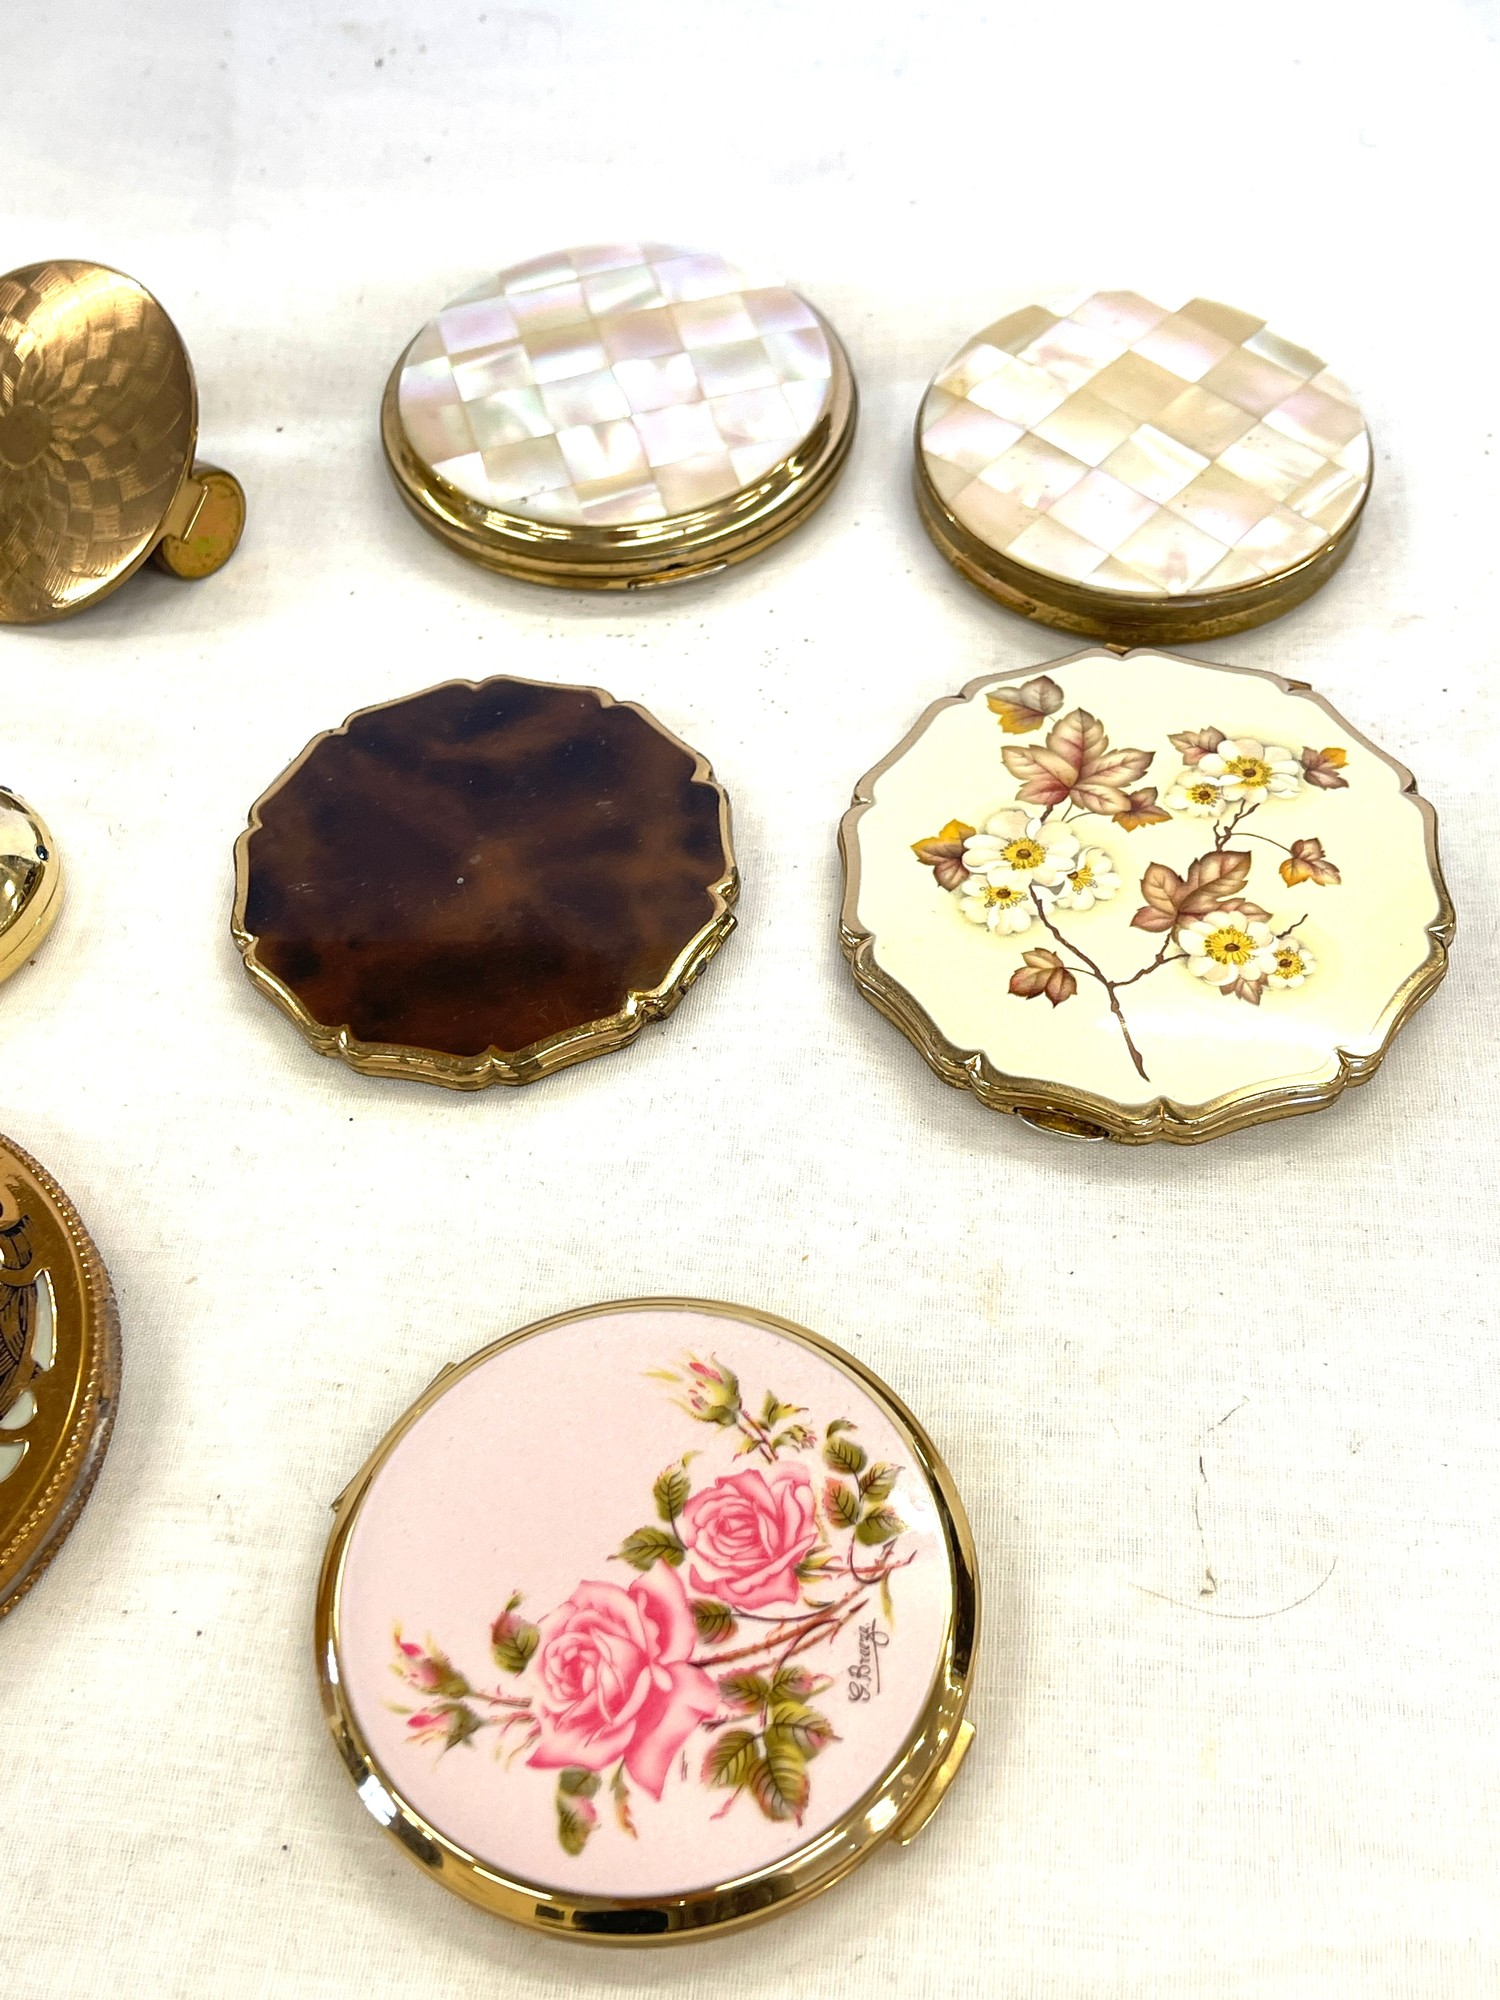 Selection of vintage ladies compacts - Image 3 of 3